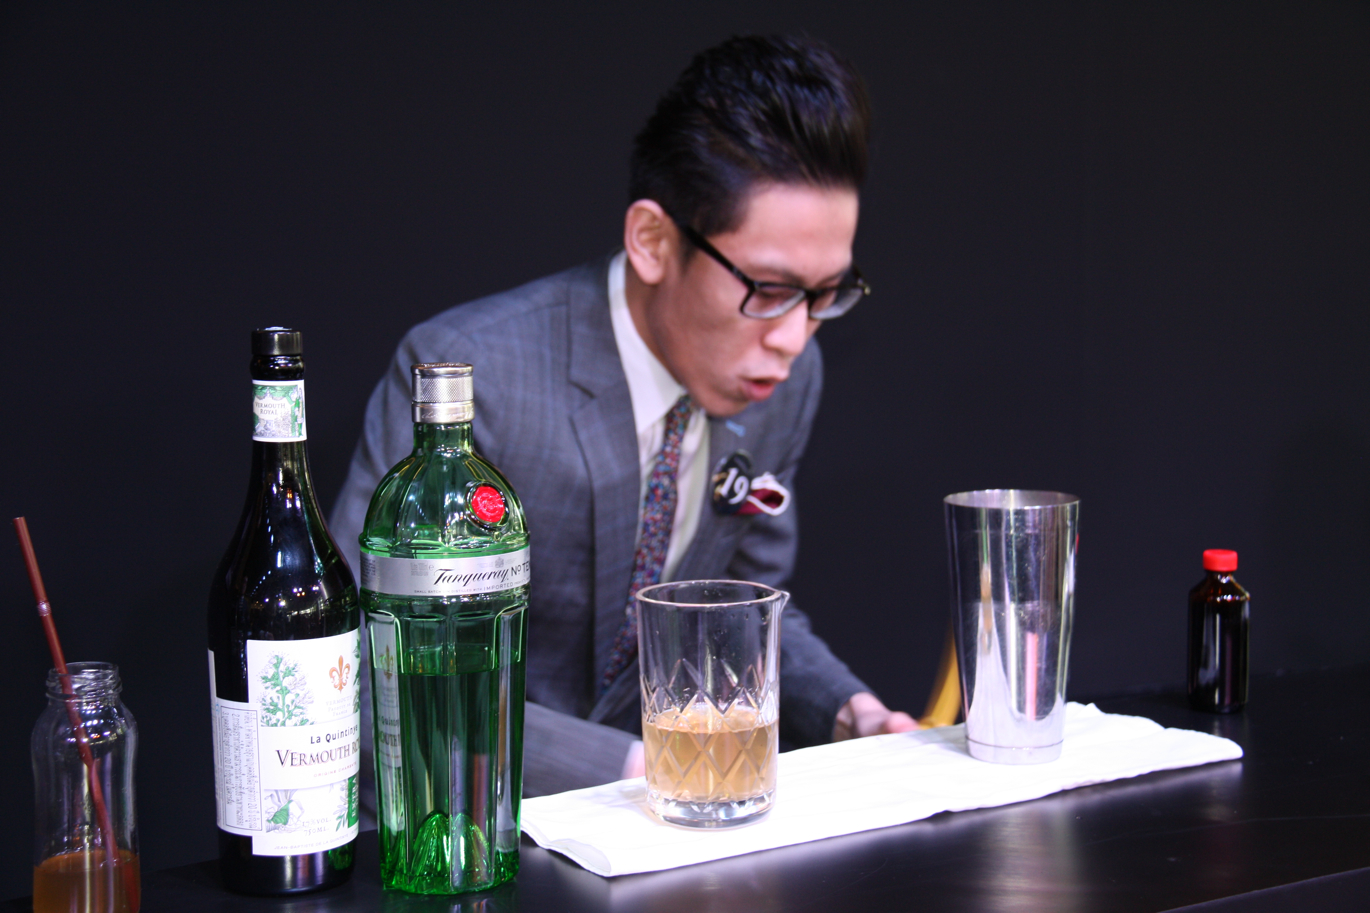 Steve Leong from Tess Bar will be representing Singapore at the World Class Global Final